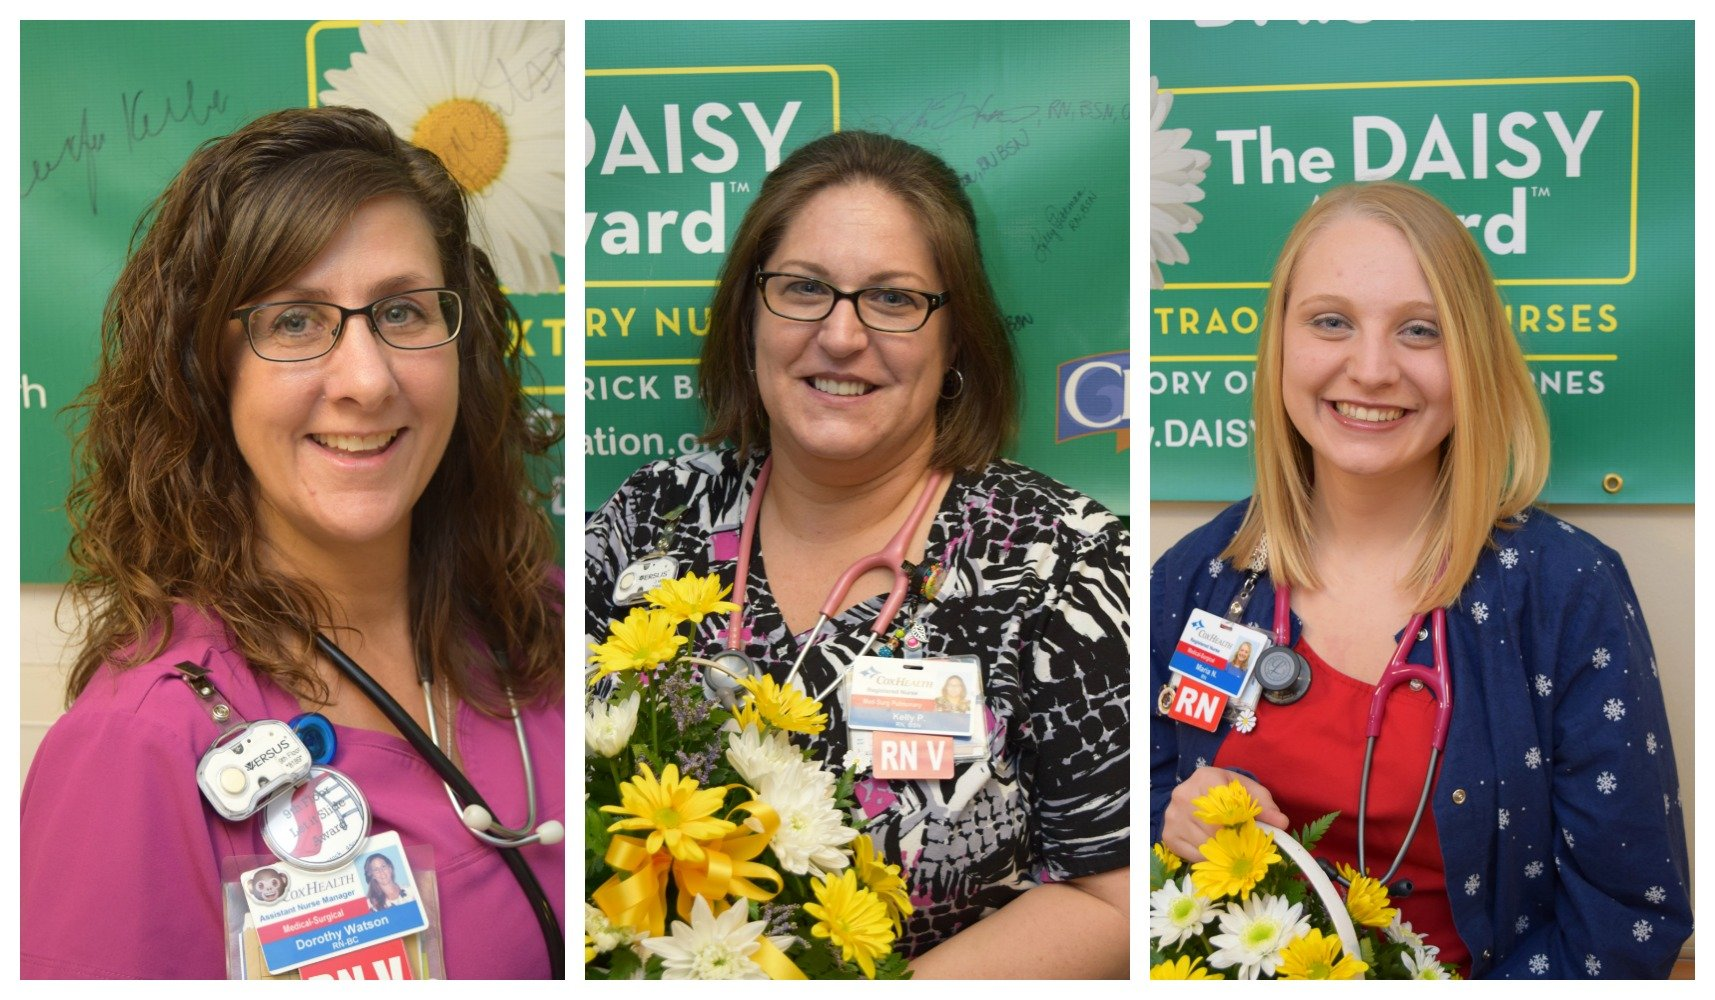 Springfield nurses winning DAISY awards pose for pictures.